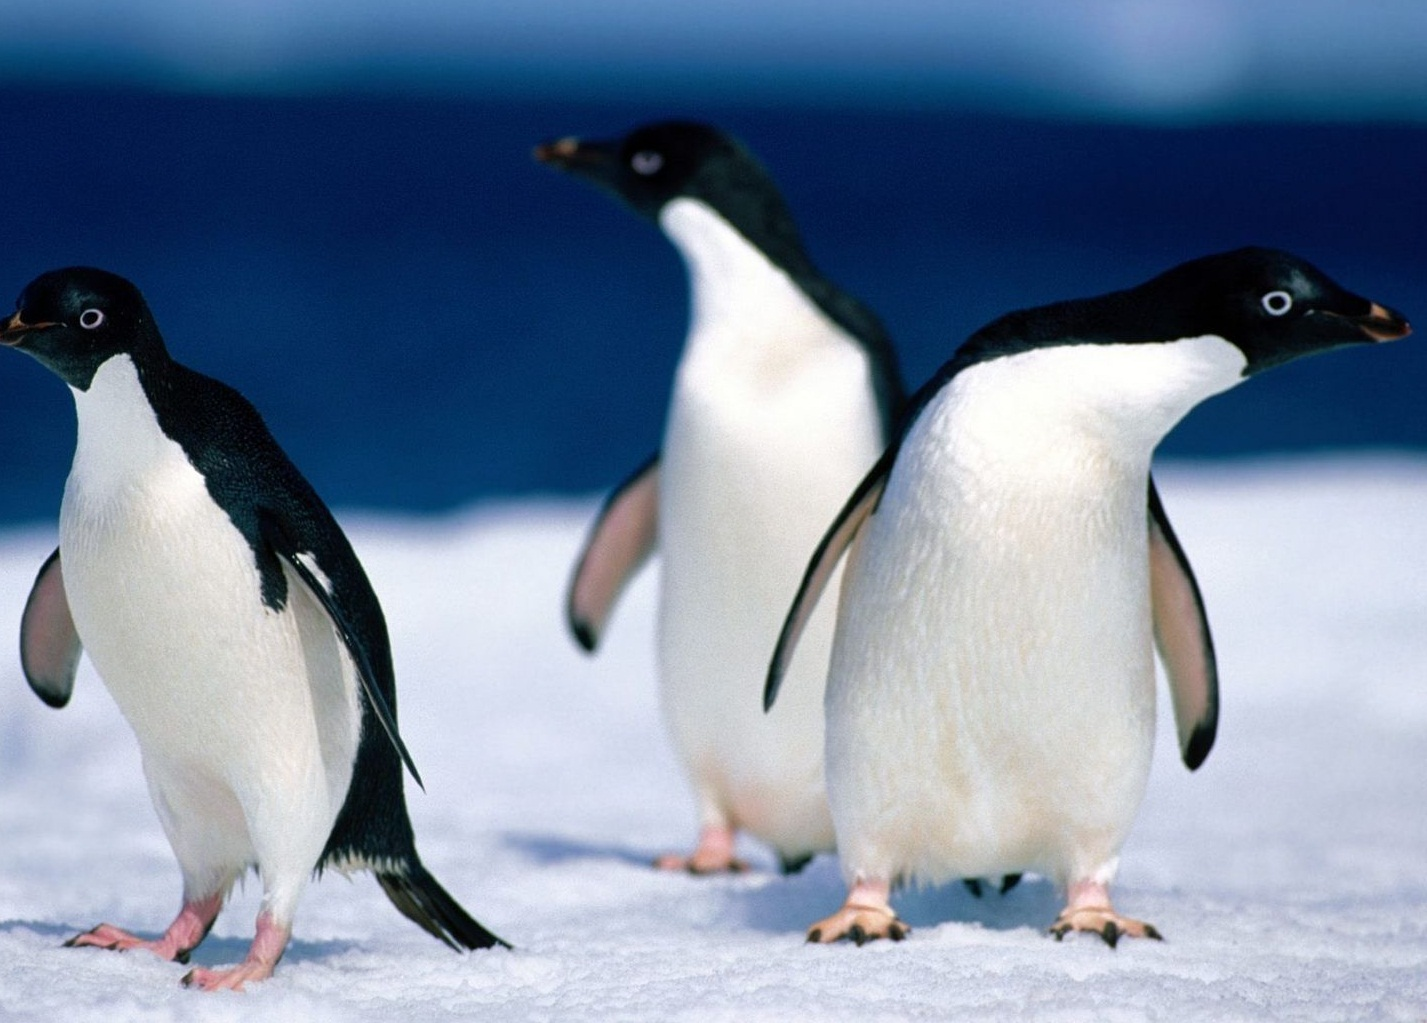 Images of adelie penguins - photo#3